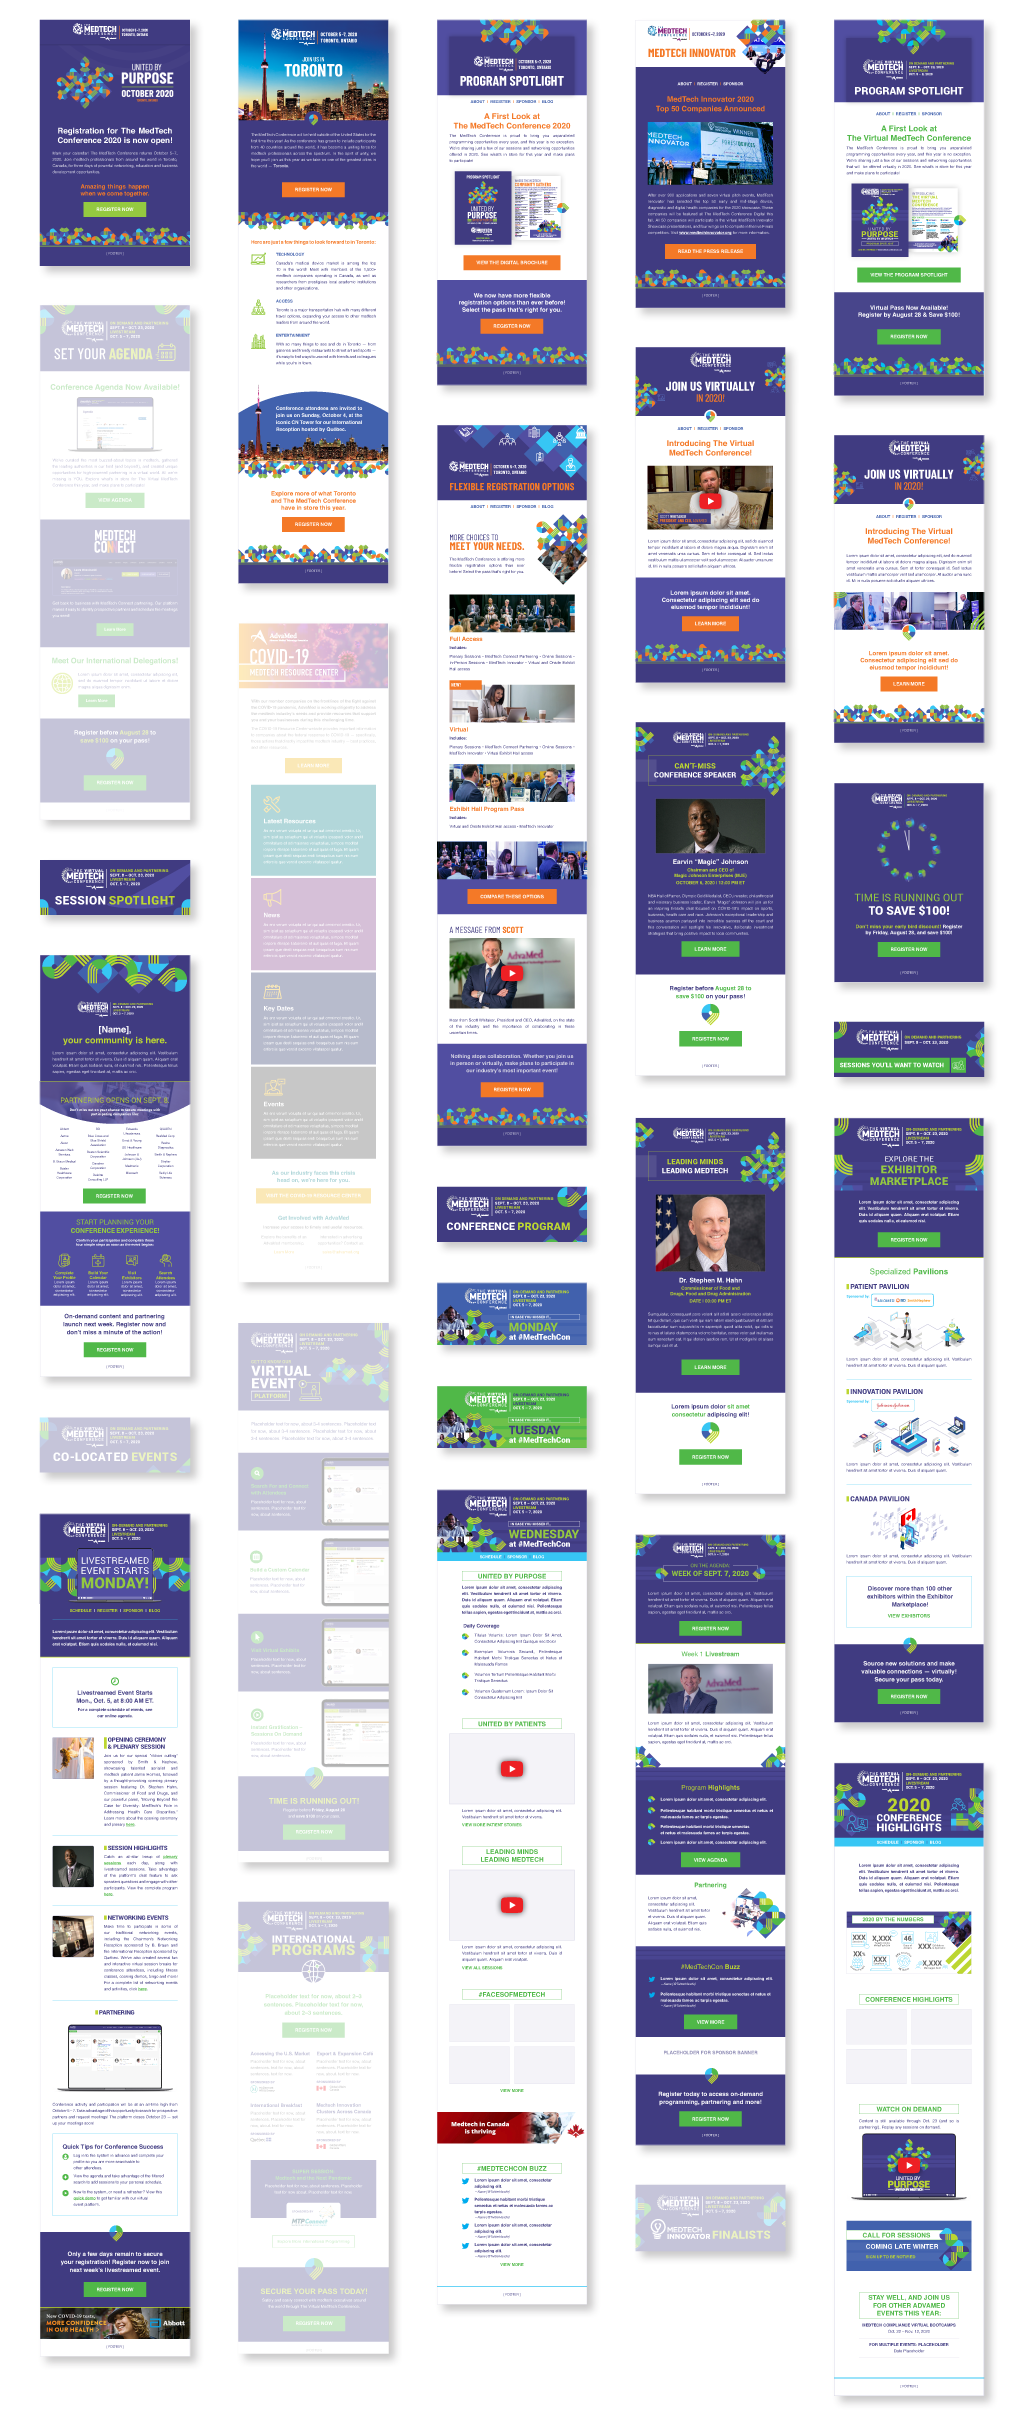 All the header, template, and one-off designs from the 2020 email marketing efforts.